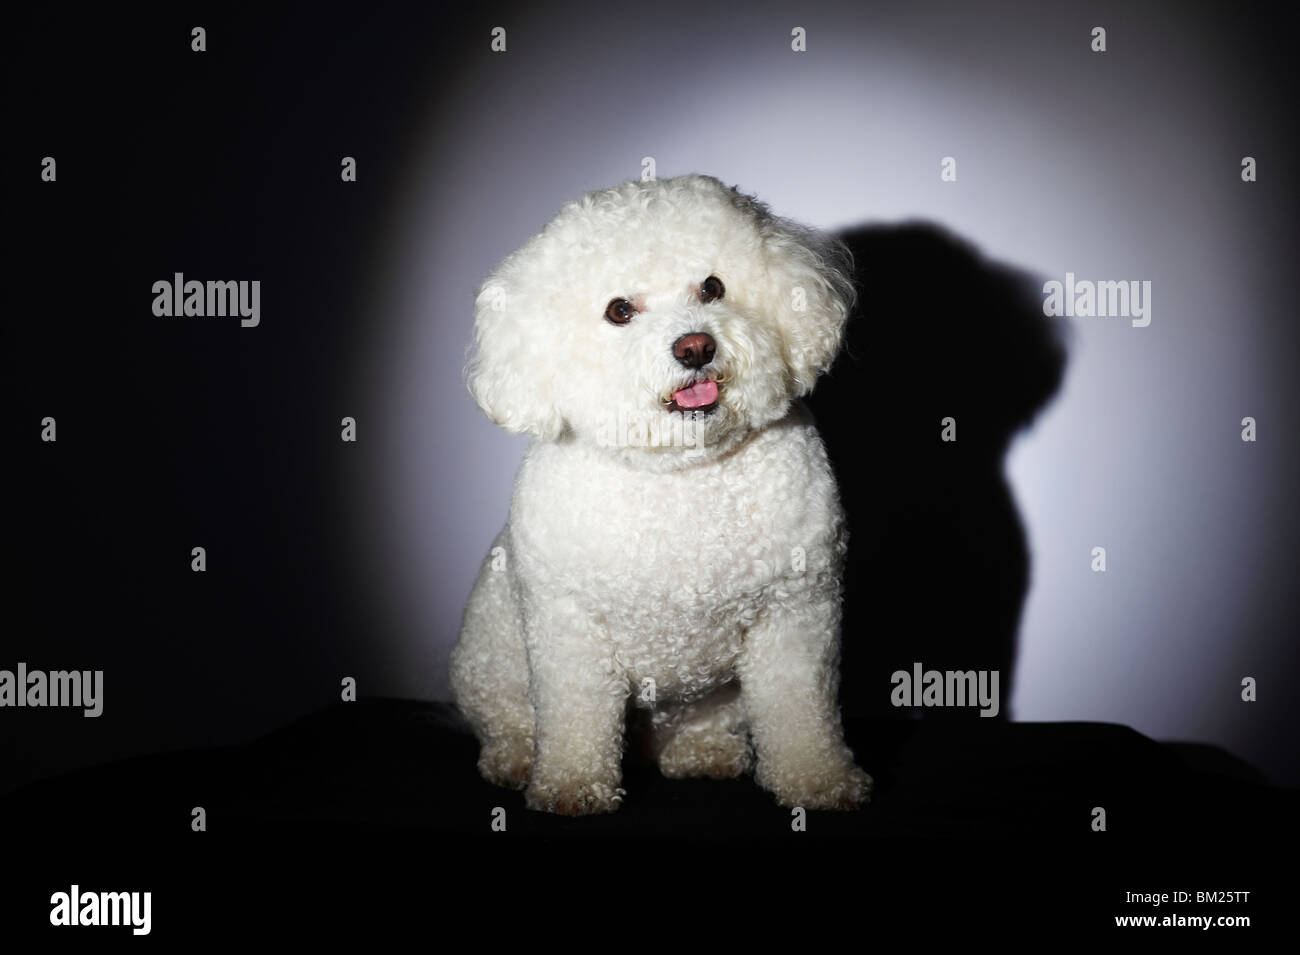 Close-up of a Bichon Frise dog - Stock Image